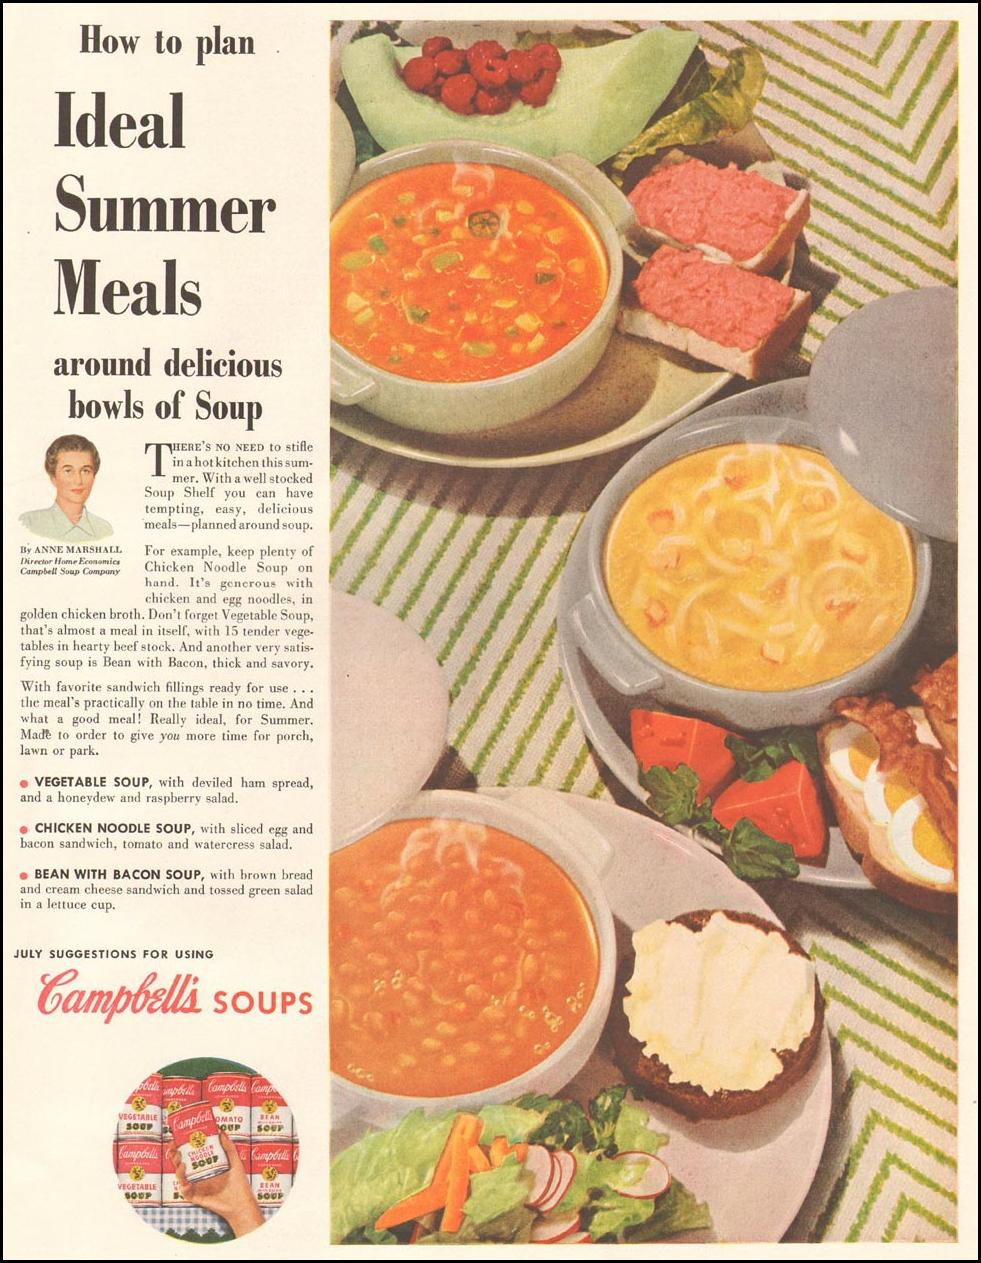 CAMPBELL'S SOUPS LADIES' HOME JOURNAL 07/01/1954 p. 55